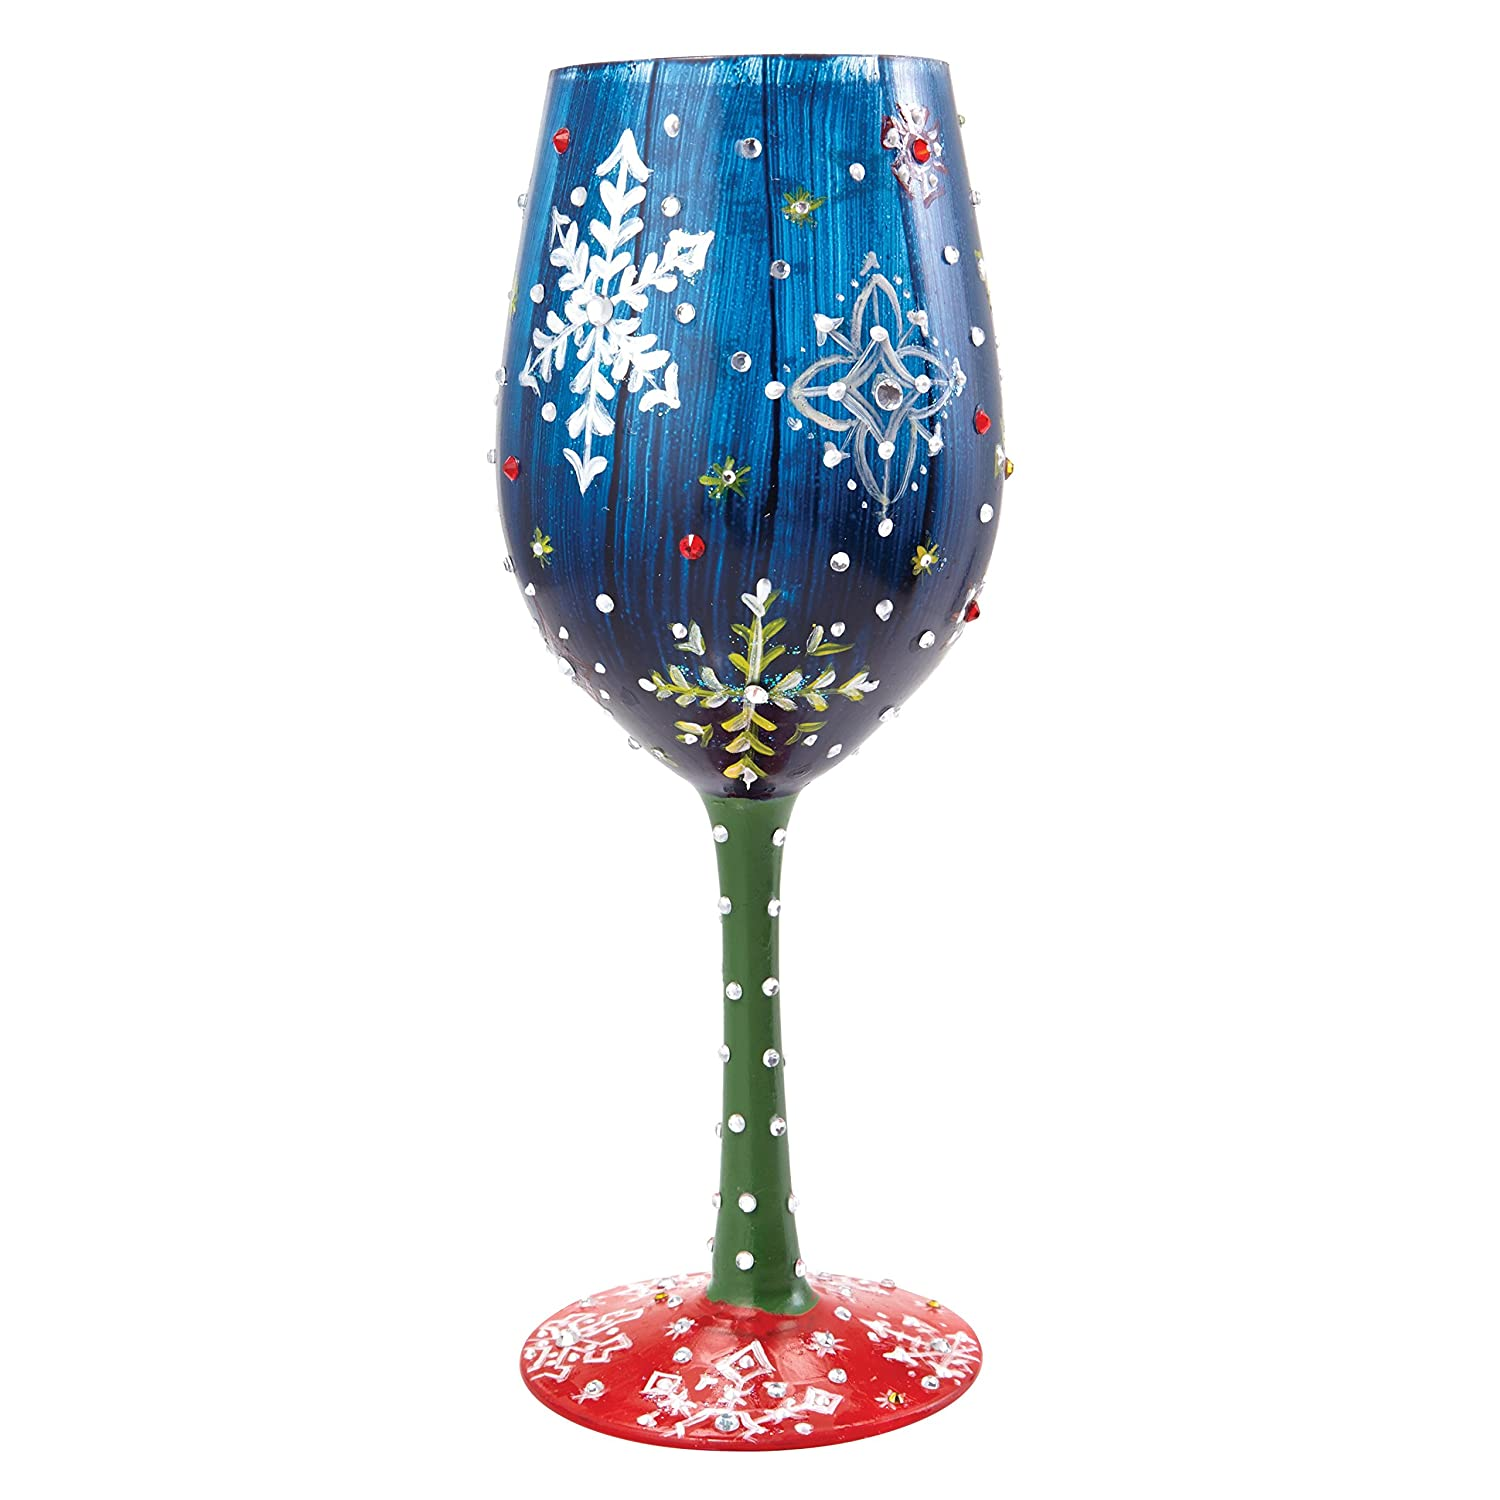 "ENESCO Designs by Lolita ""Happily Engaged"" Hand-painted Artisan Wine Glass, 15 oz. 4056855"